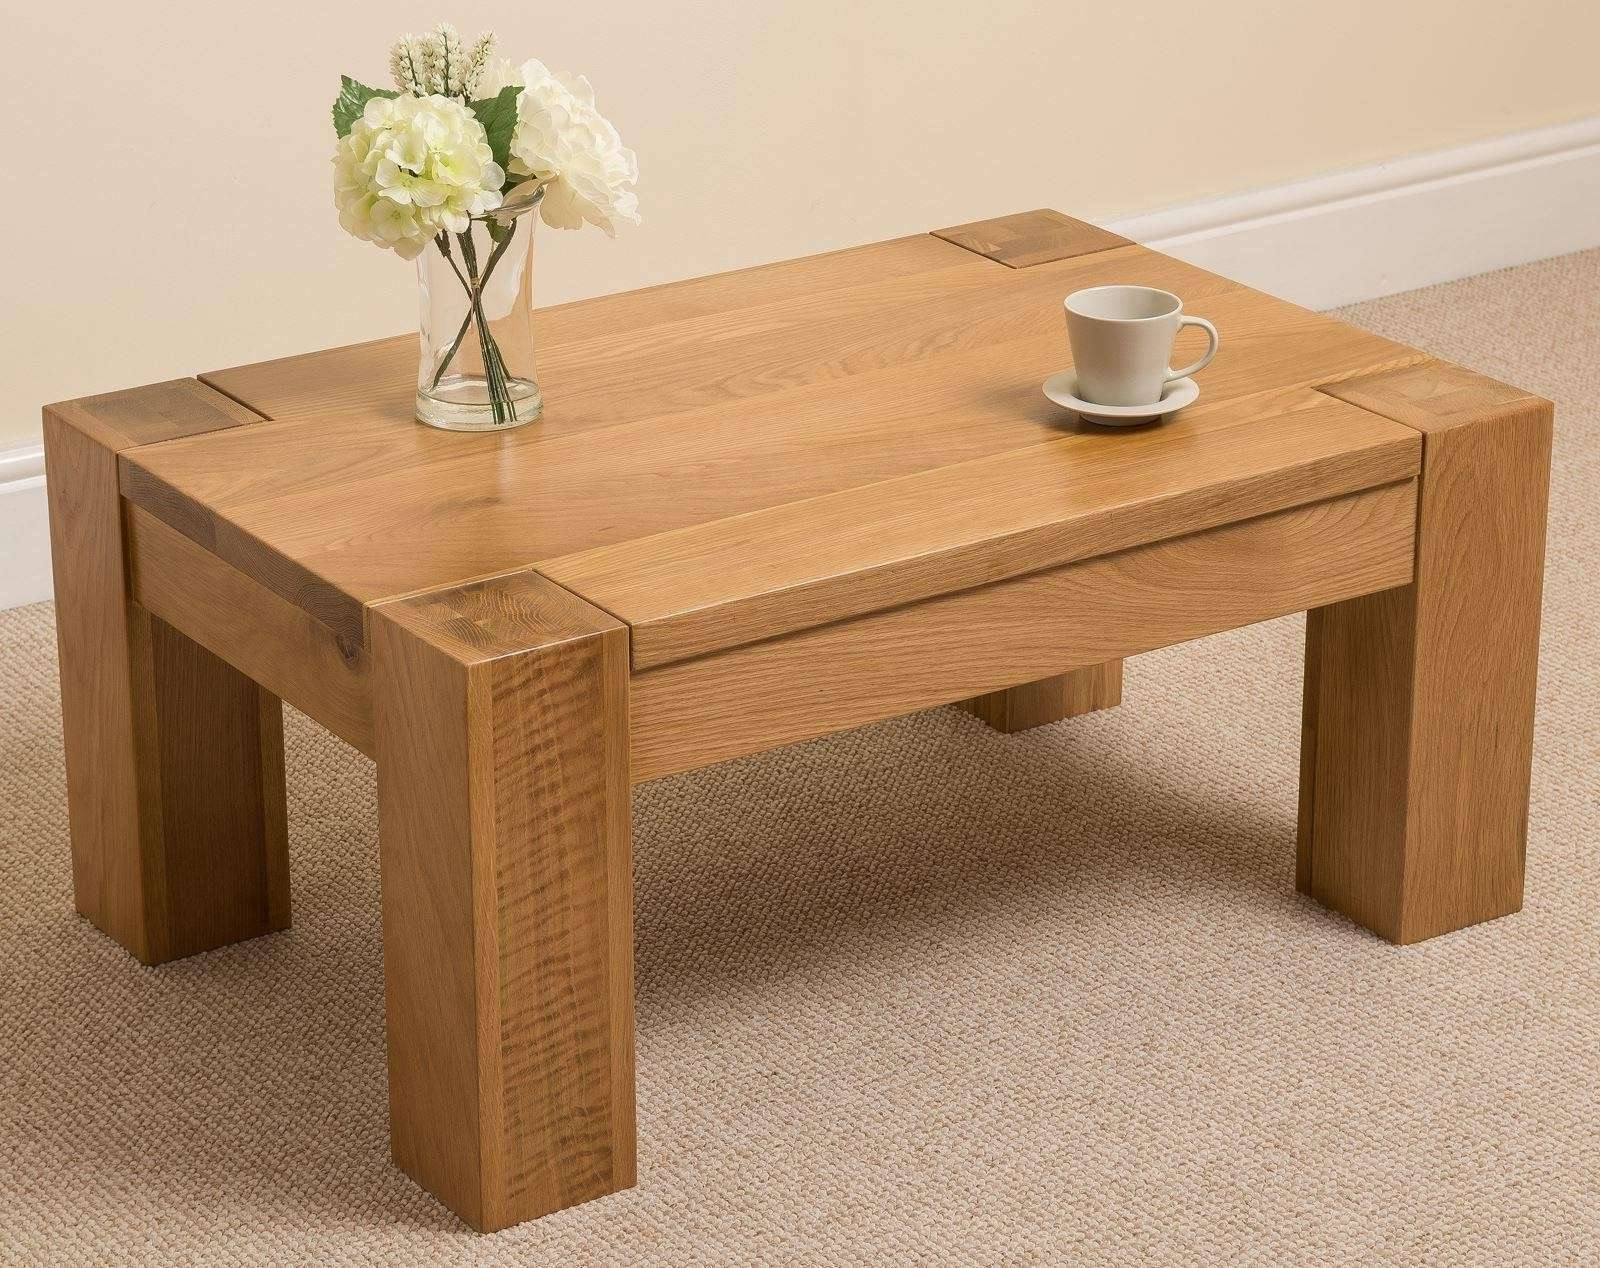 Recent Light Oak Coffee Tables For Glass Coffee Krusin Square Coffee Table In Oak With Glass Top Blue (View 5 of 20)